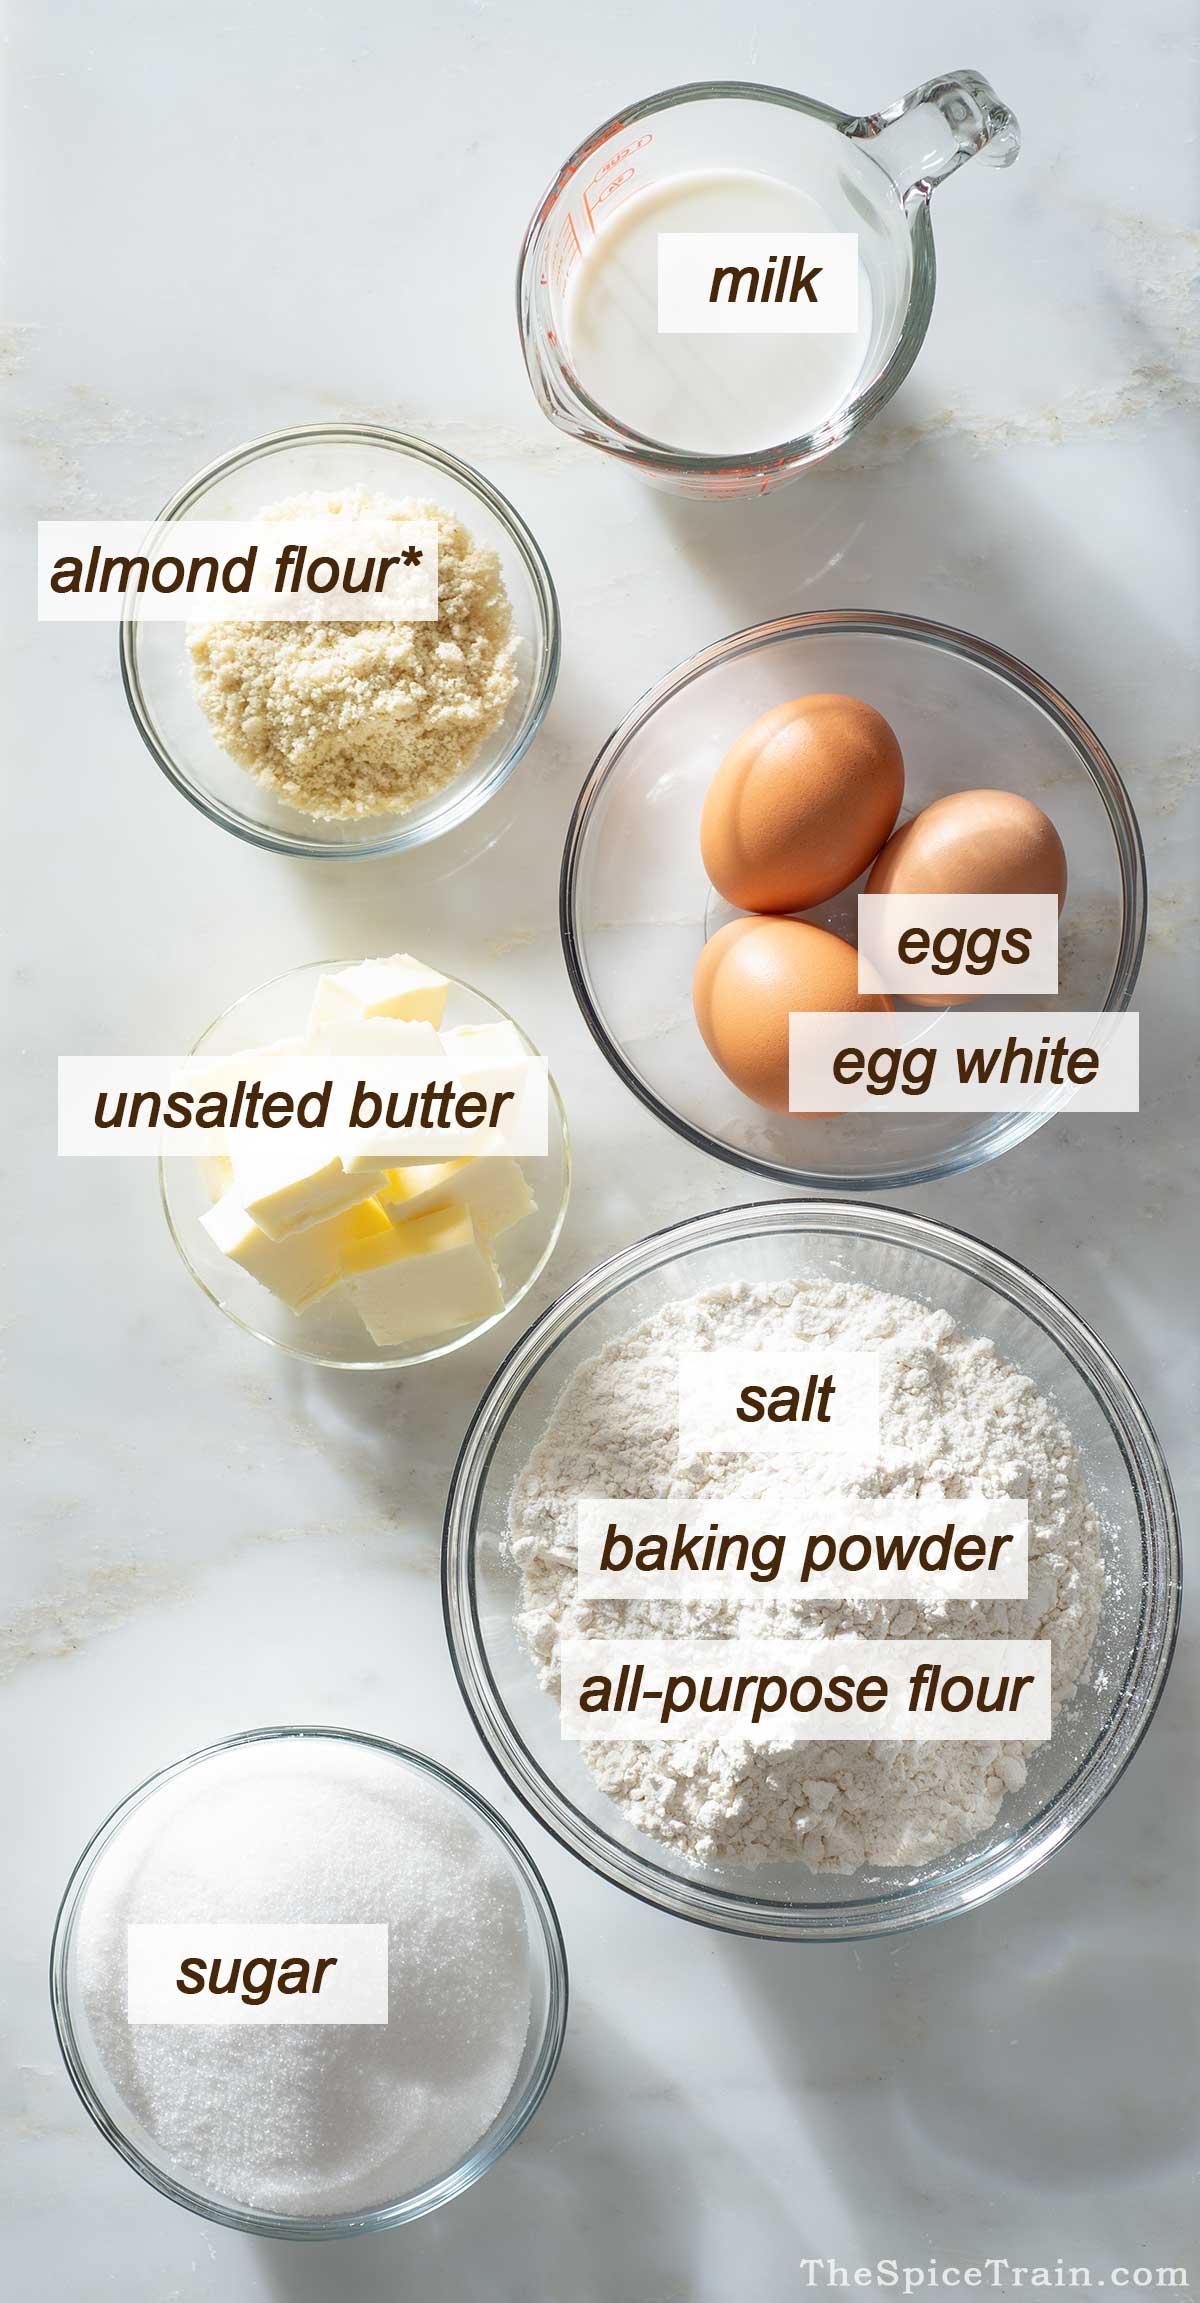 All ingredients needed to make almond cake.